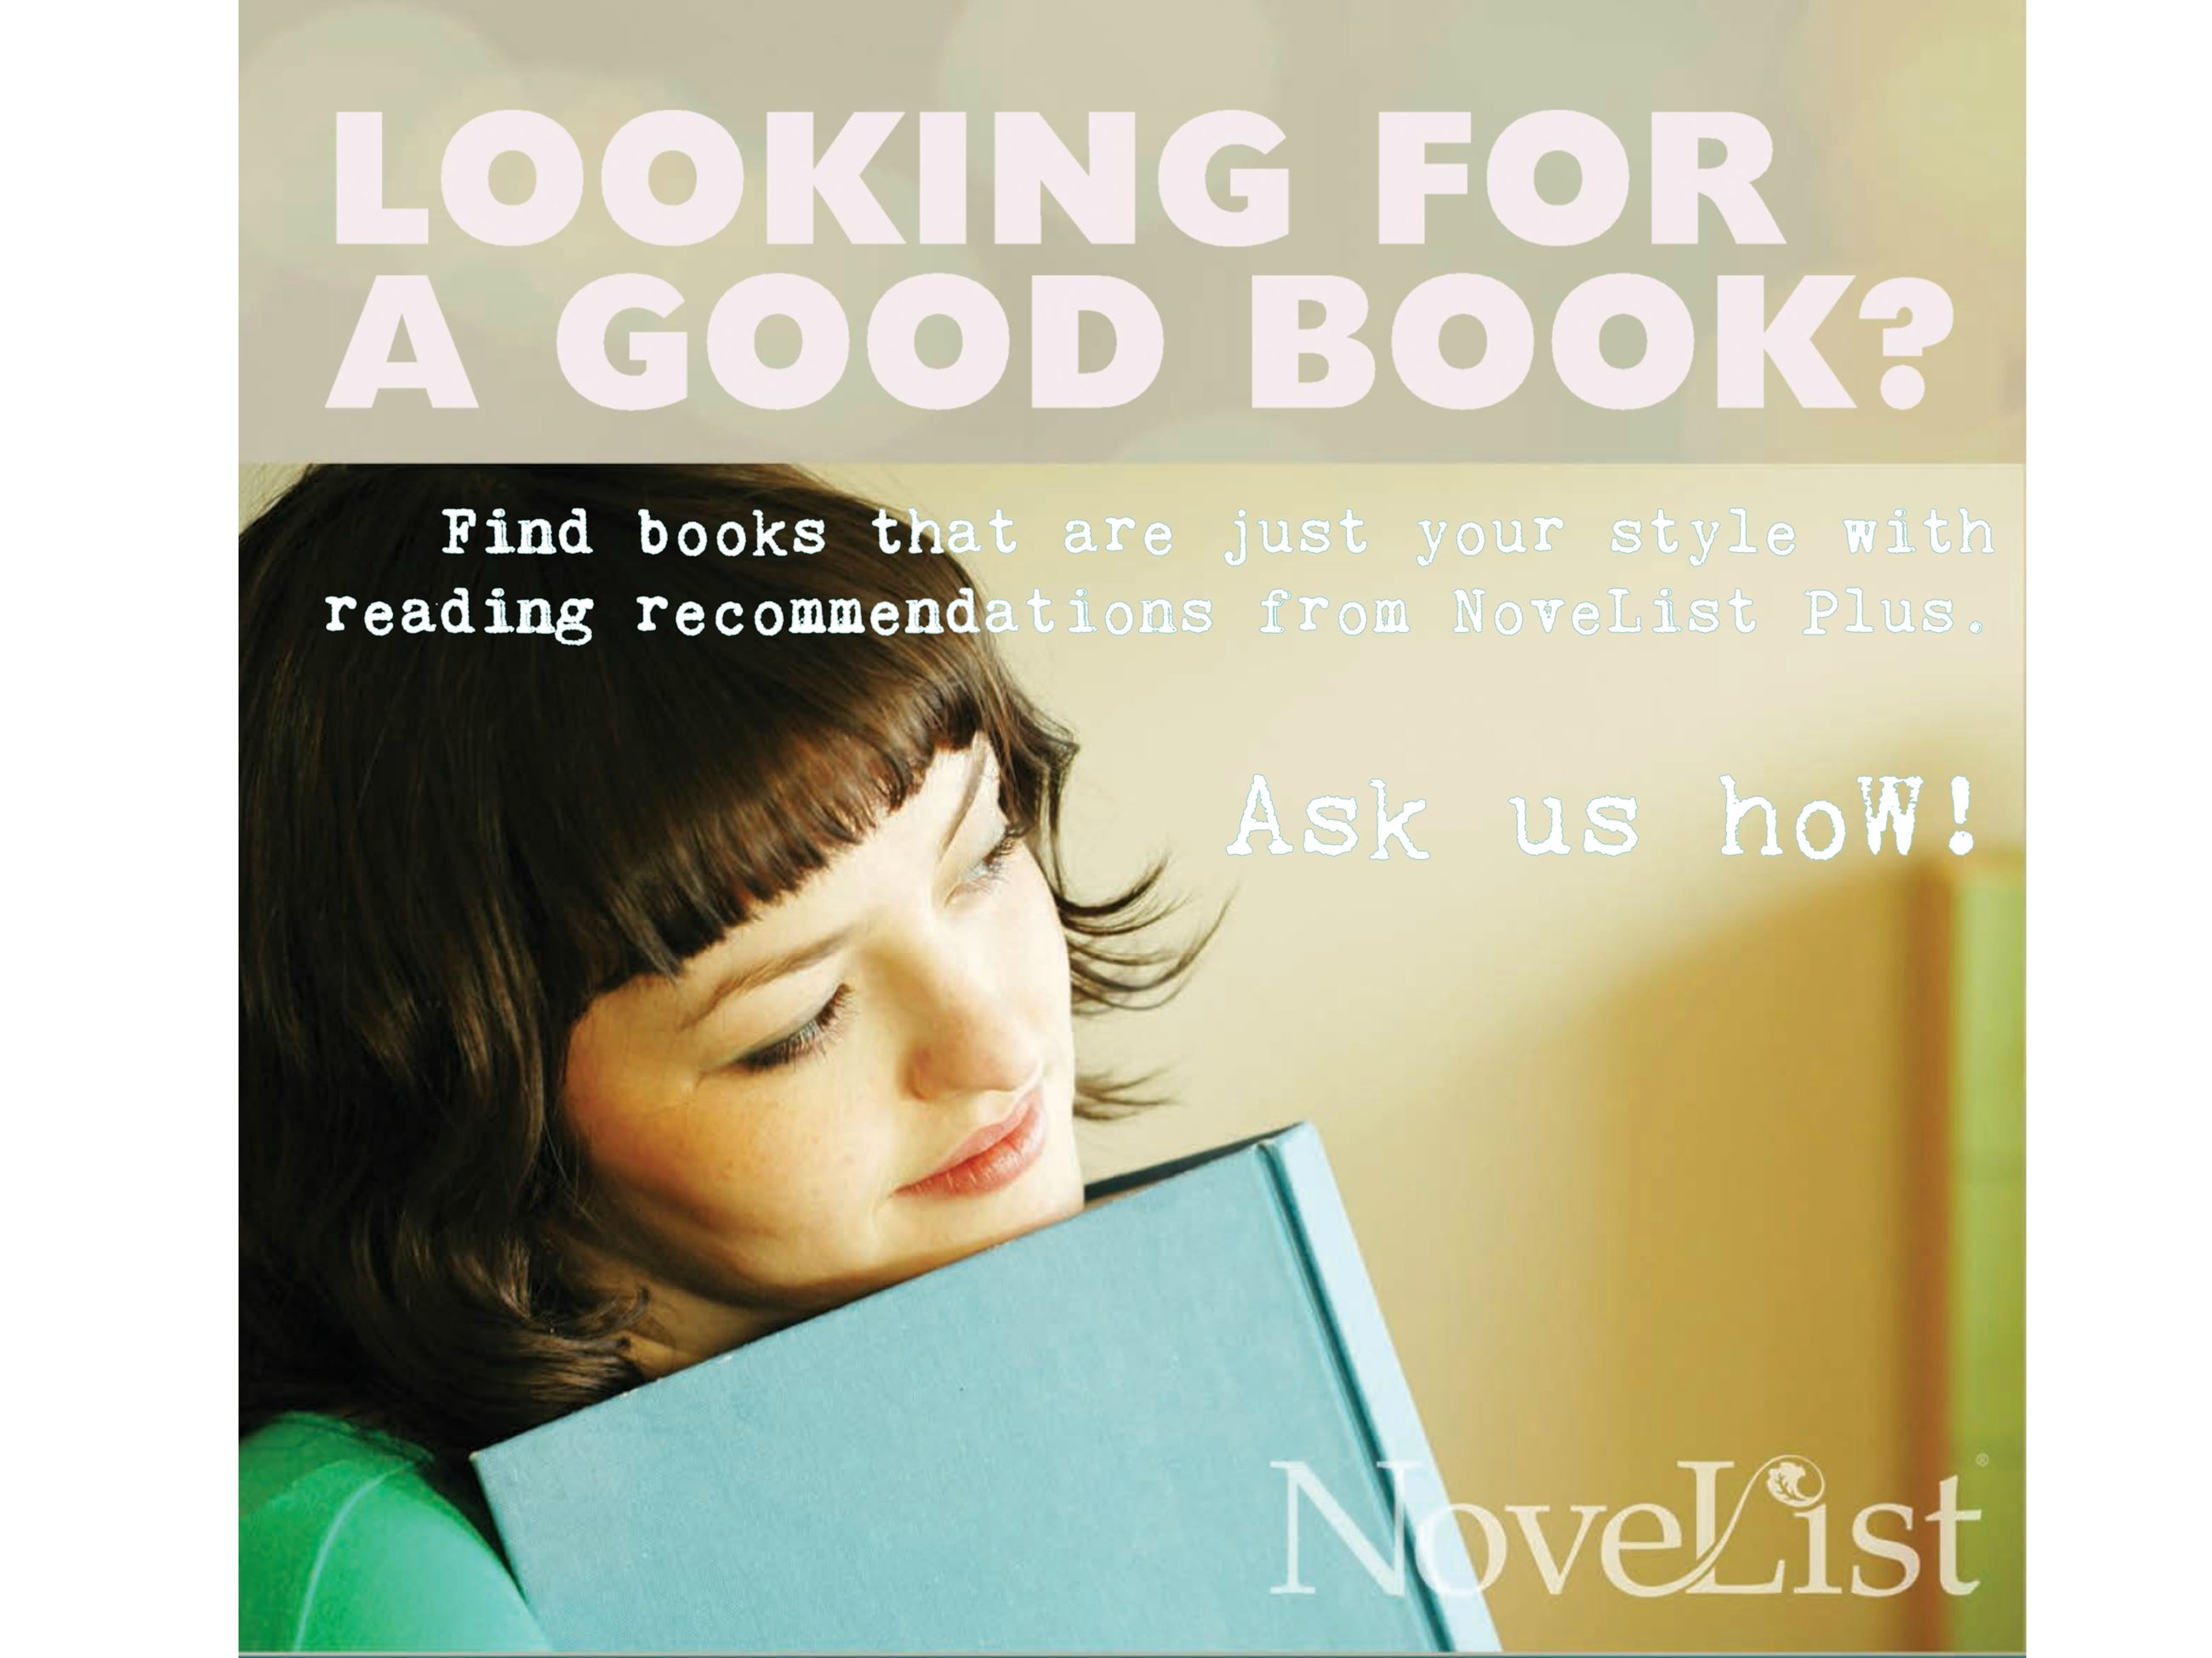 Looking for a good new book? click here to visit NoveList